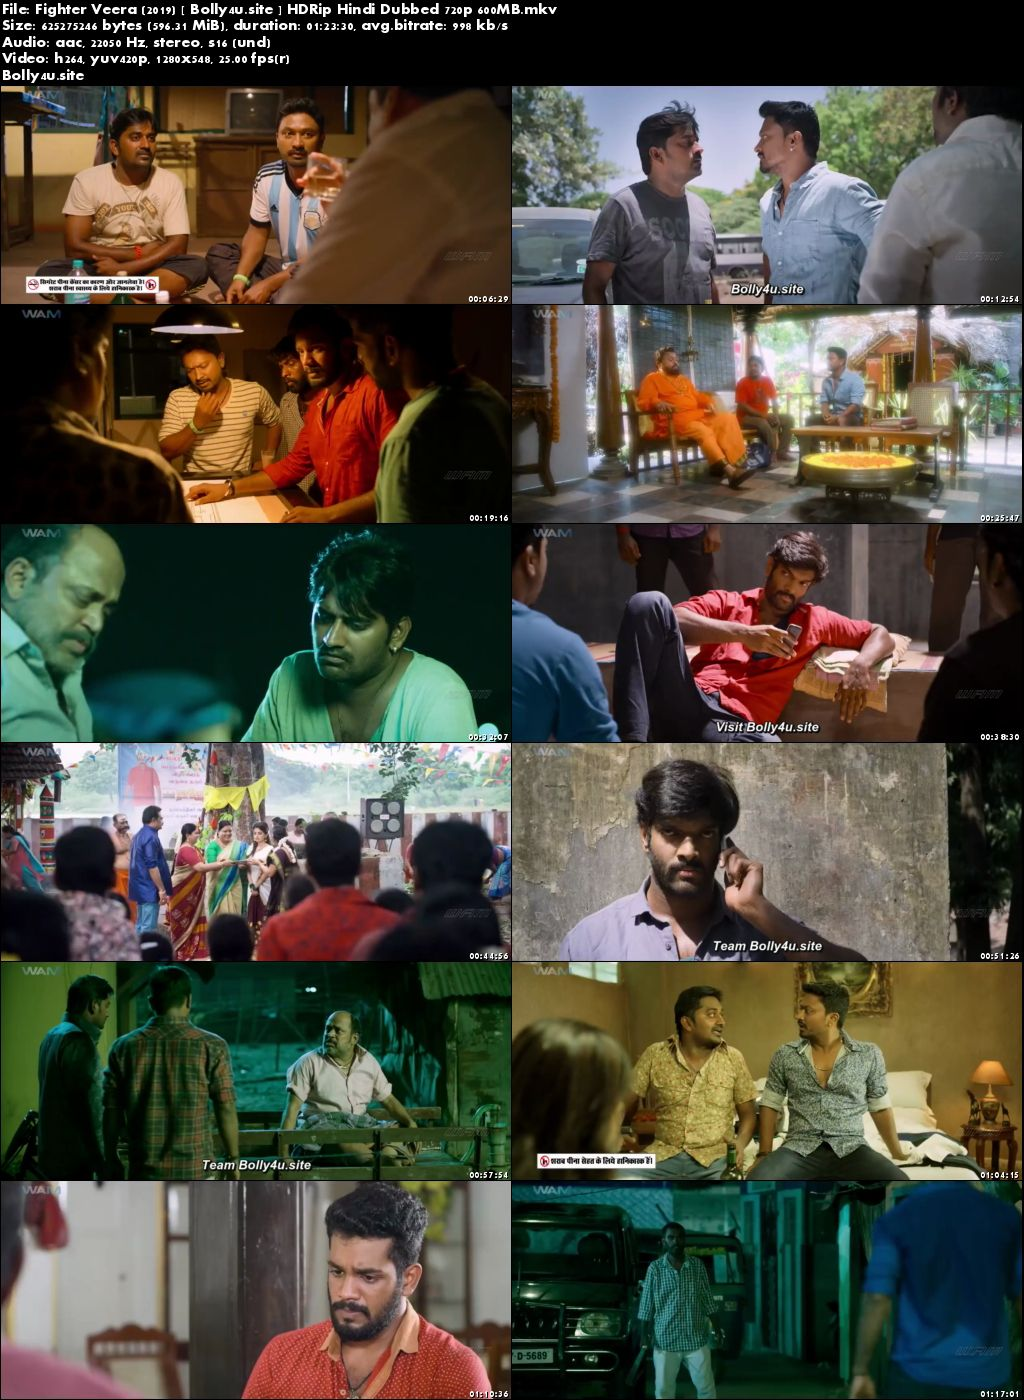 Fighter Veera 2019 HDRip 250MB Hindi Dubbed 480p Download